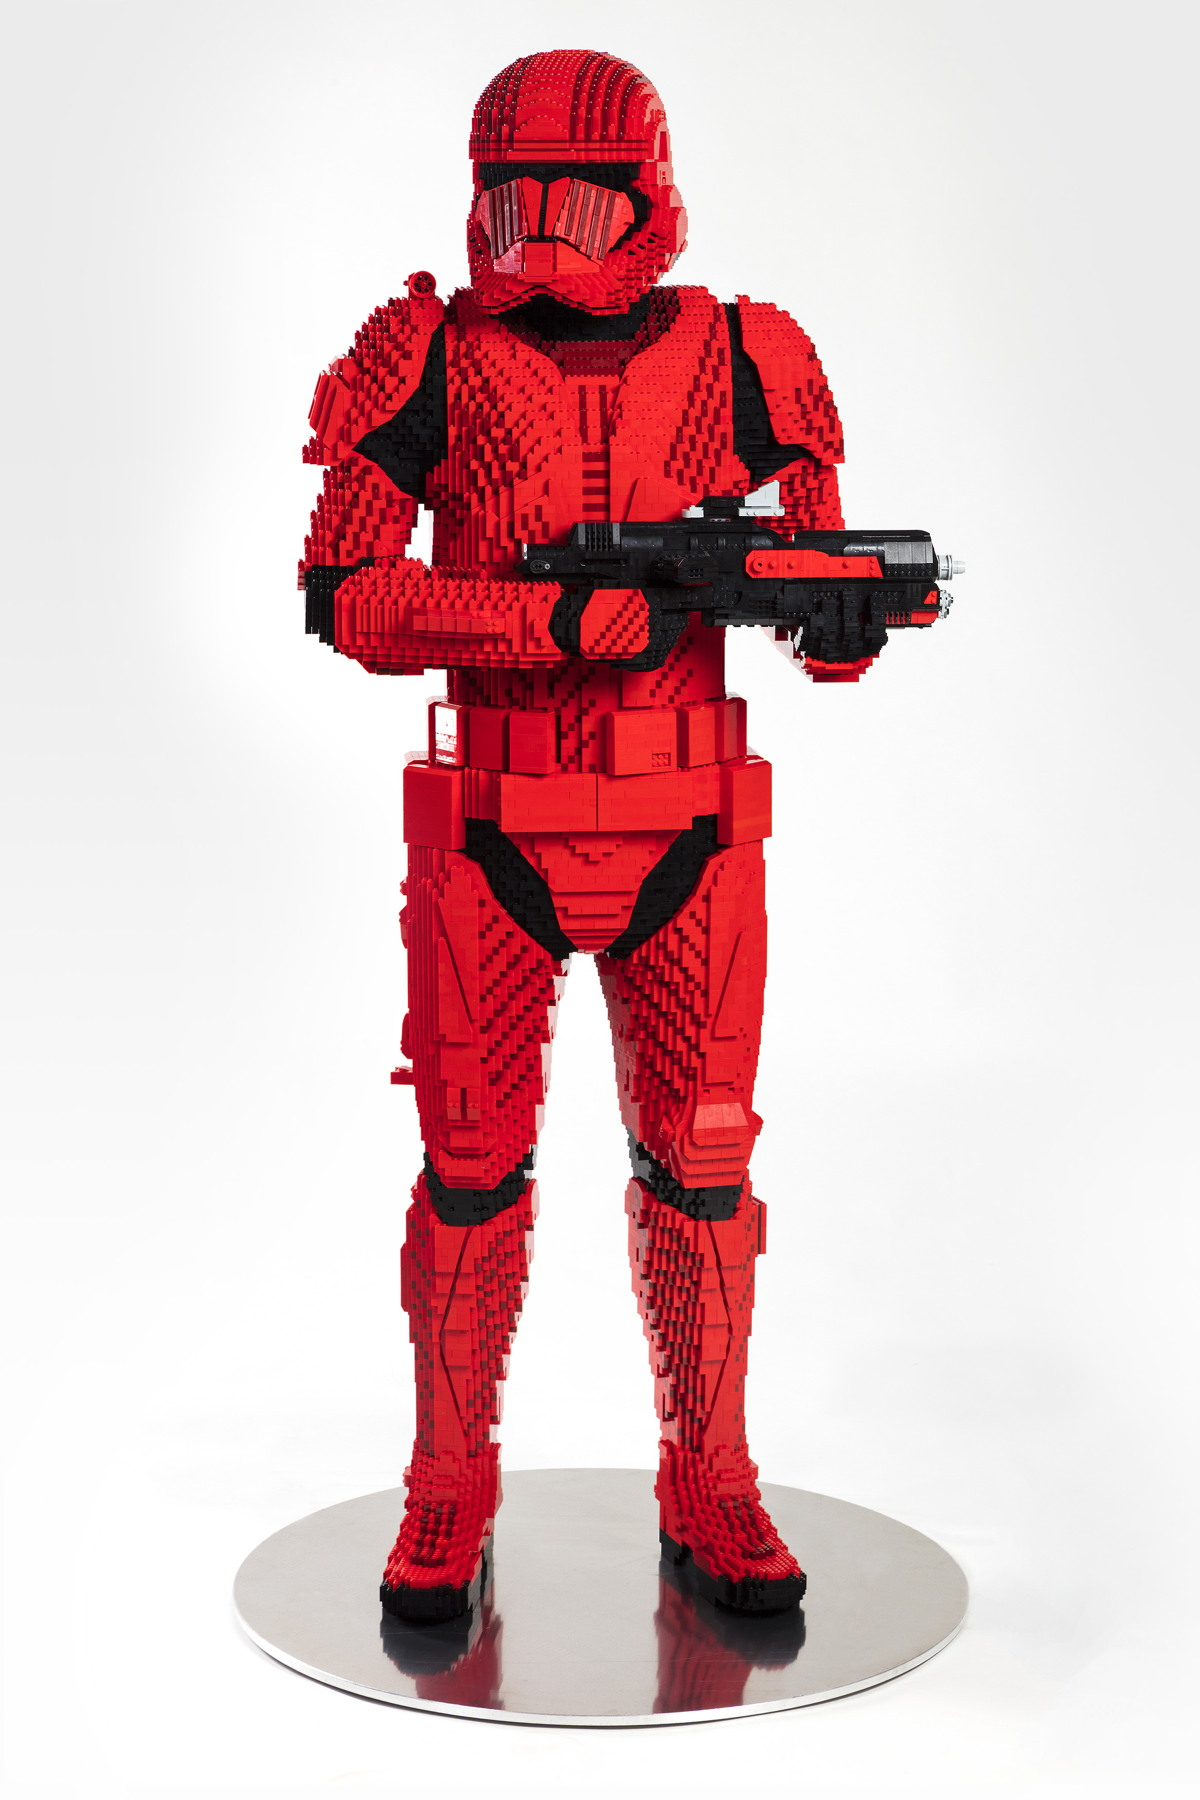 LEGO_Sith_Trooper_SDCC2019_Front.jpg